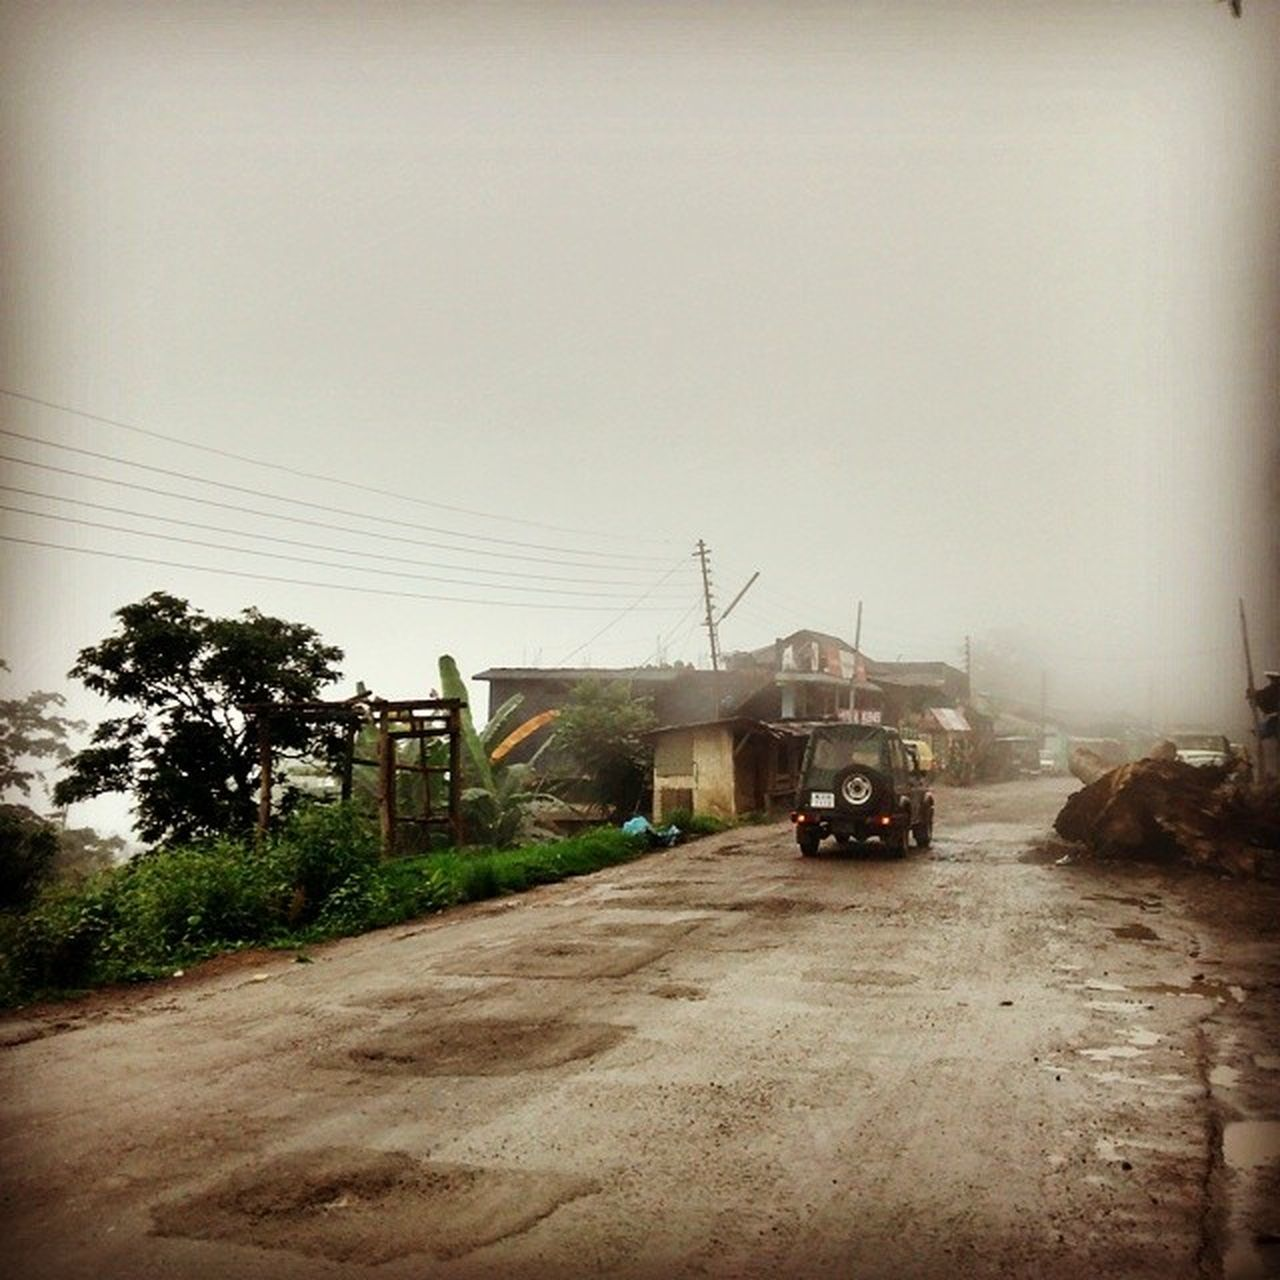 Climbing up the hills to Kohima. Weather's becoming a little more comfortable. Like Bangalore at the moment. IndiaTrail Roadtrip Fog Mist Hills Kohima Dimapur Nagaland Nothumidatall Weather